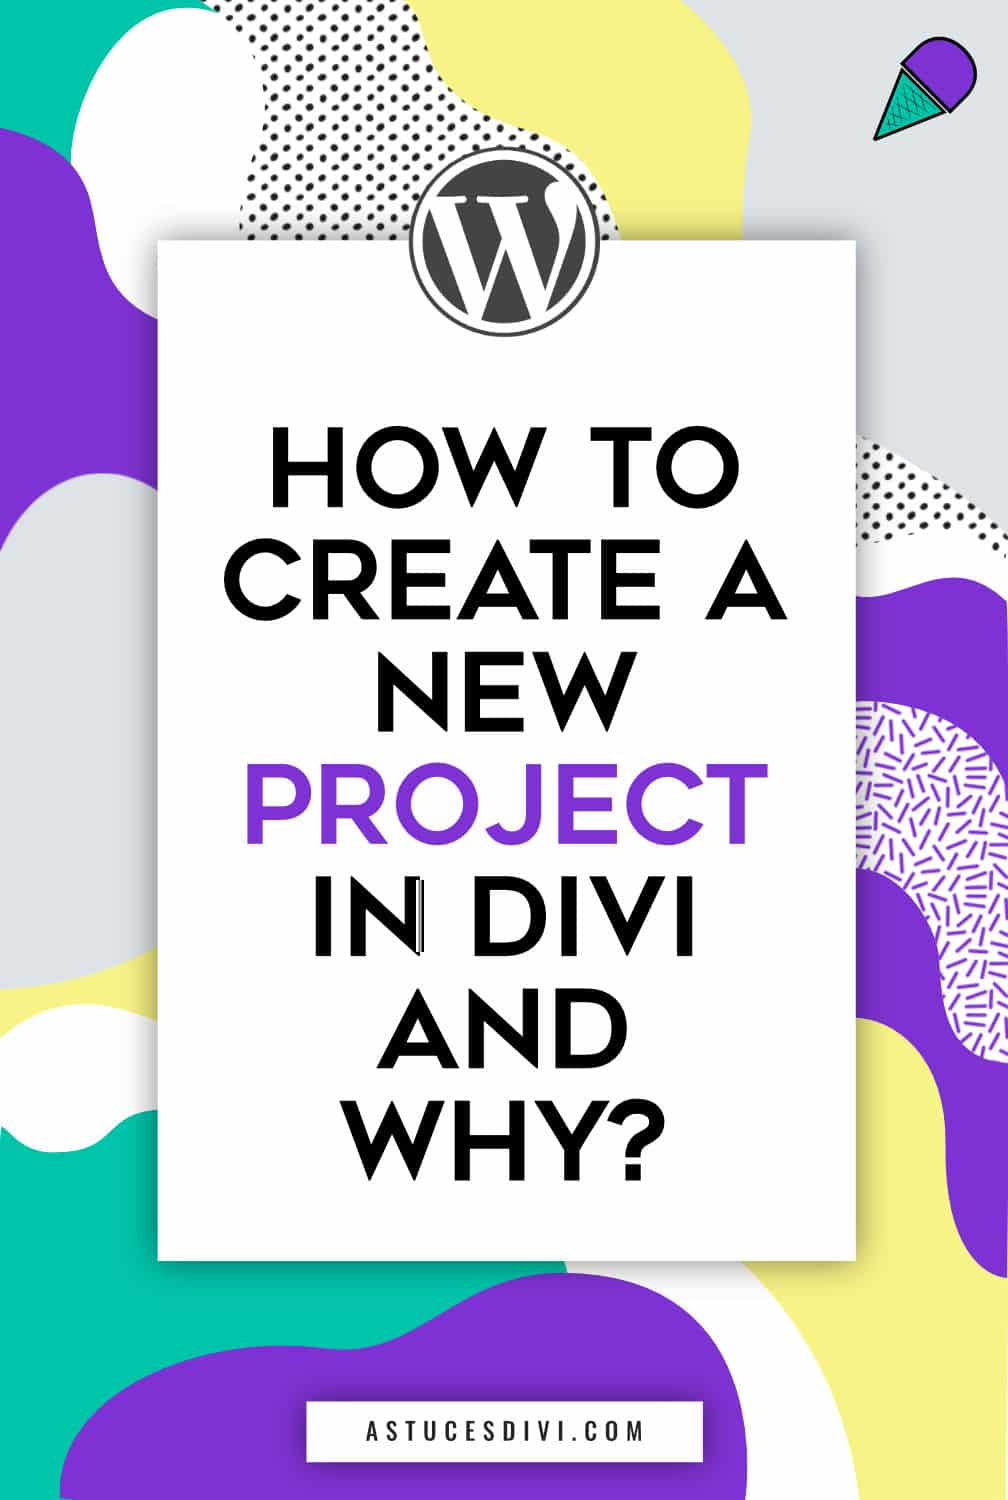 How to create a Divi Project